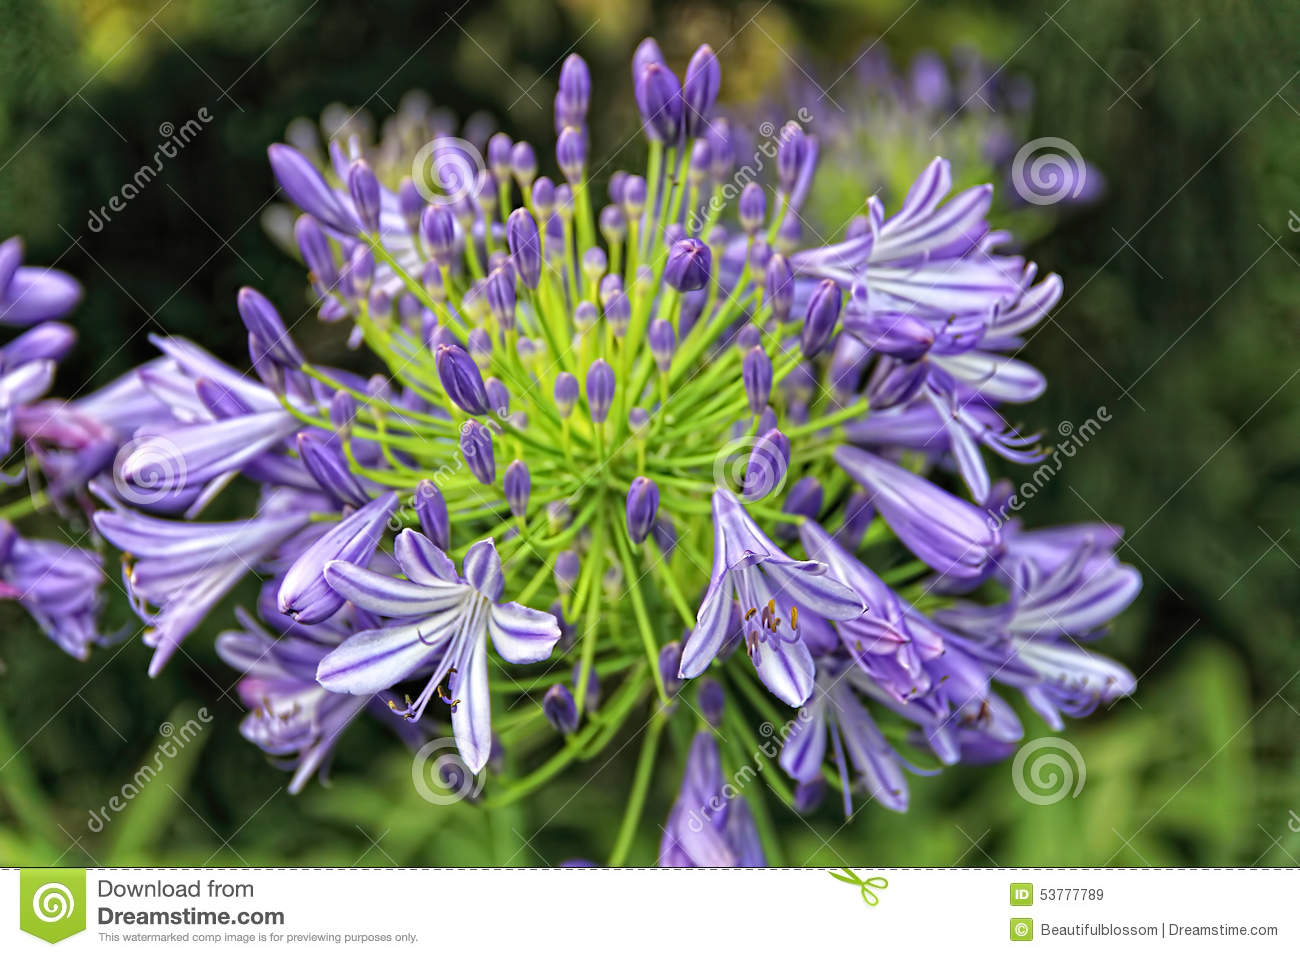 Download Agapanthus flower stock image. Image of blossoming, beautiful - 53777789